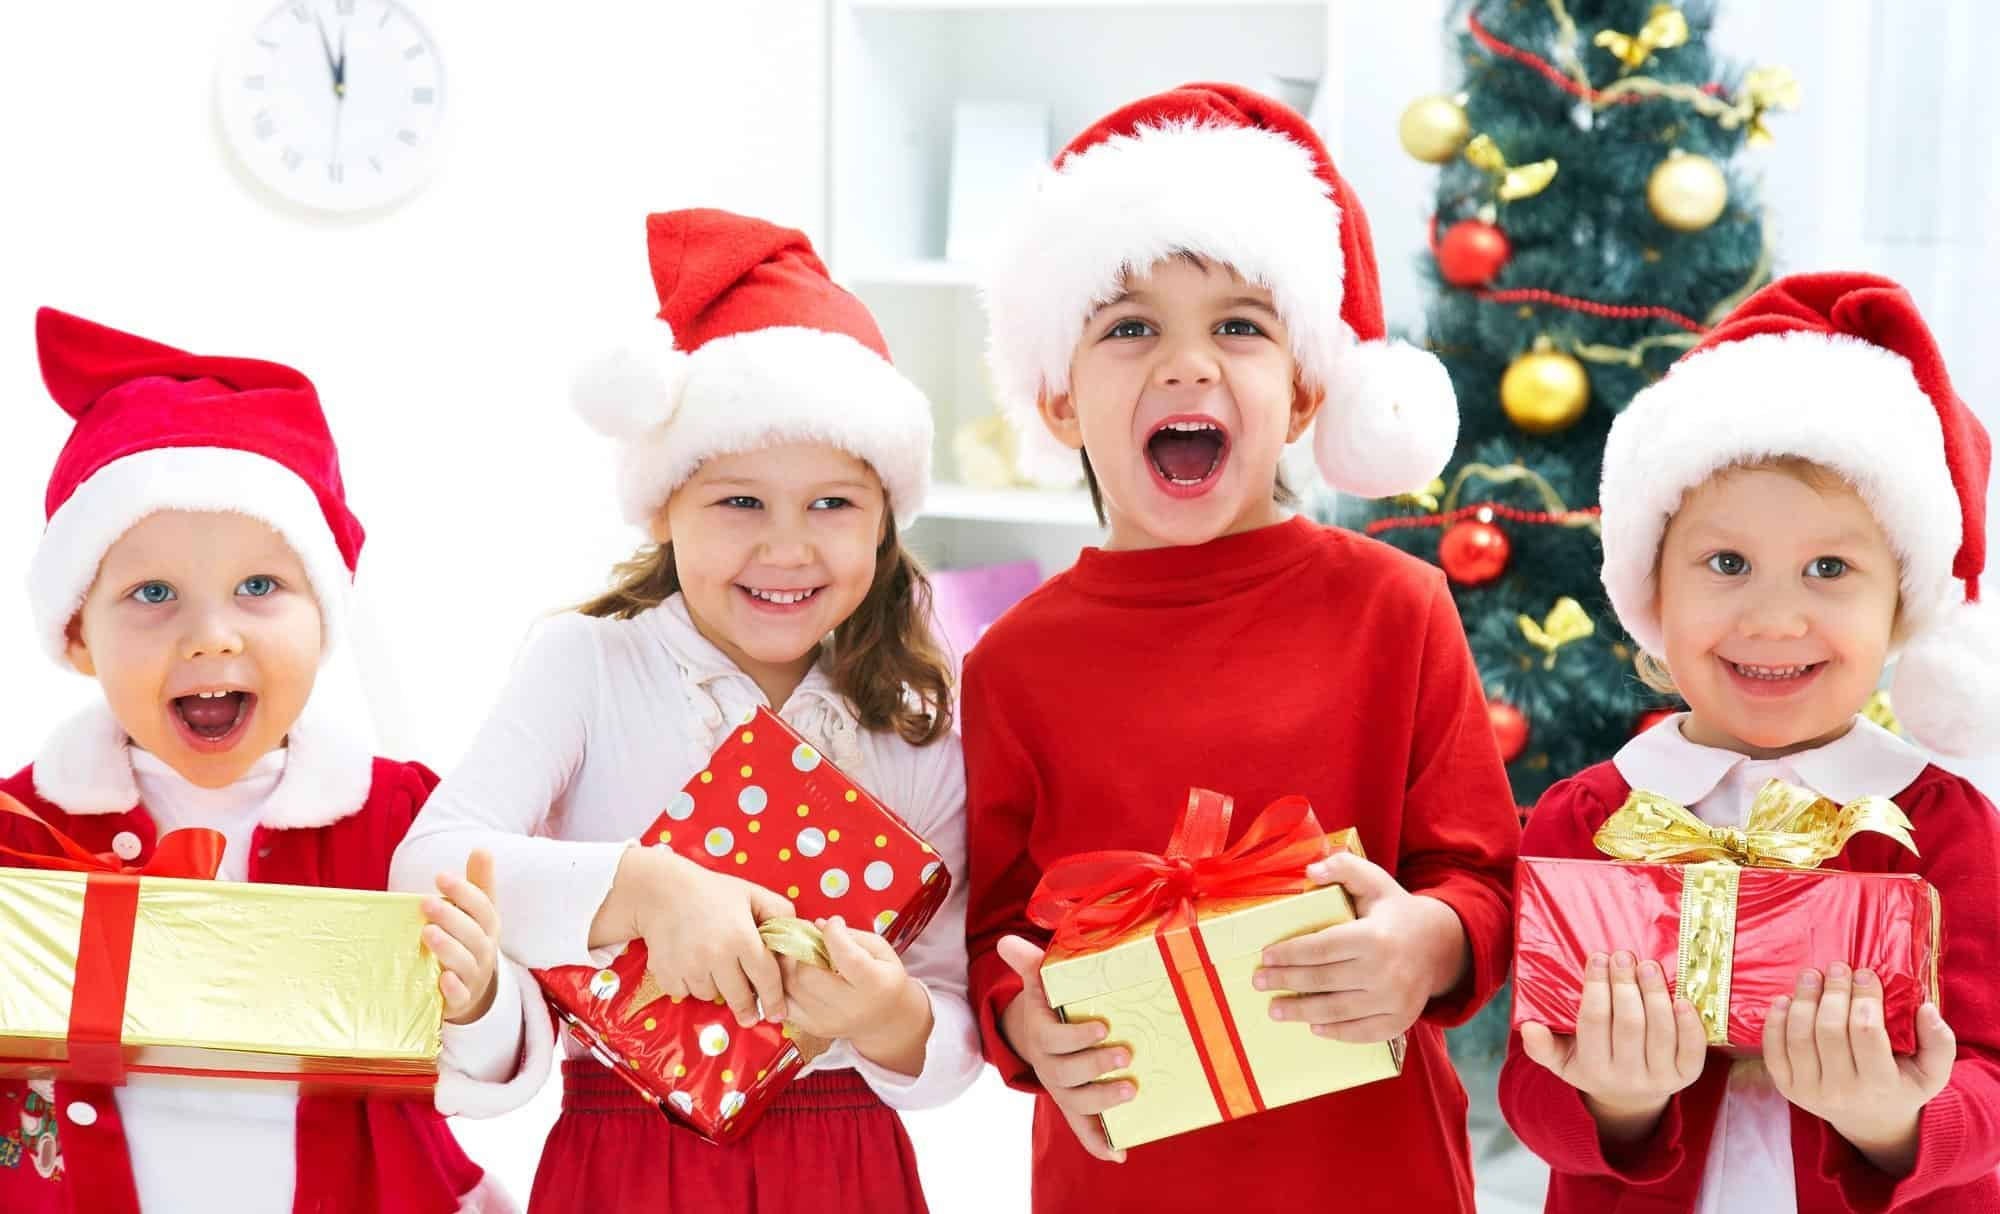 Hot Christmas Gifts for Kids